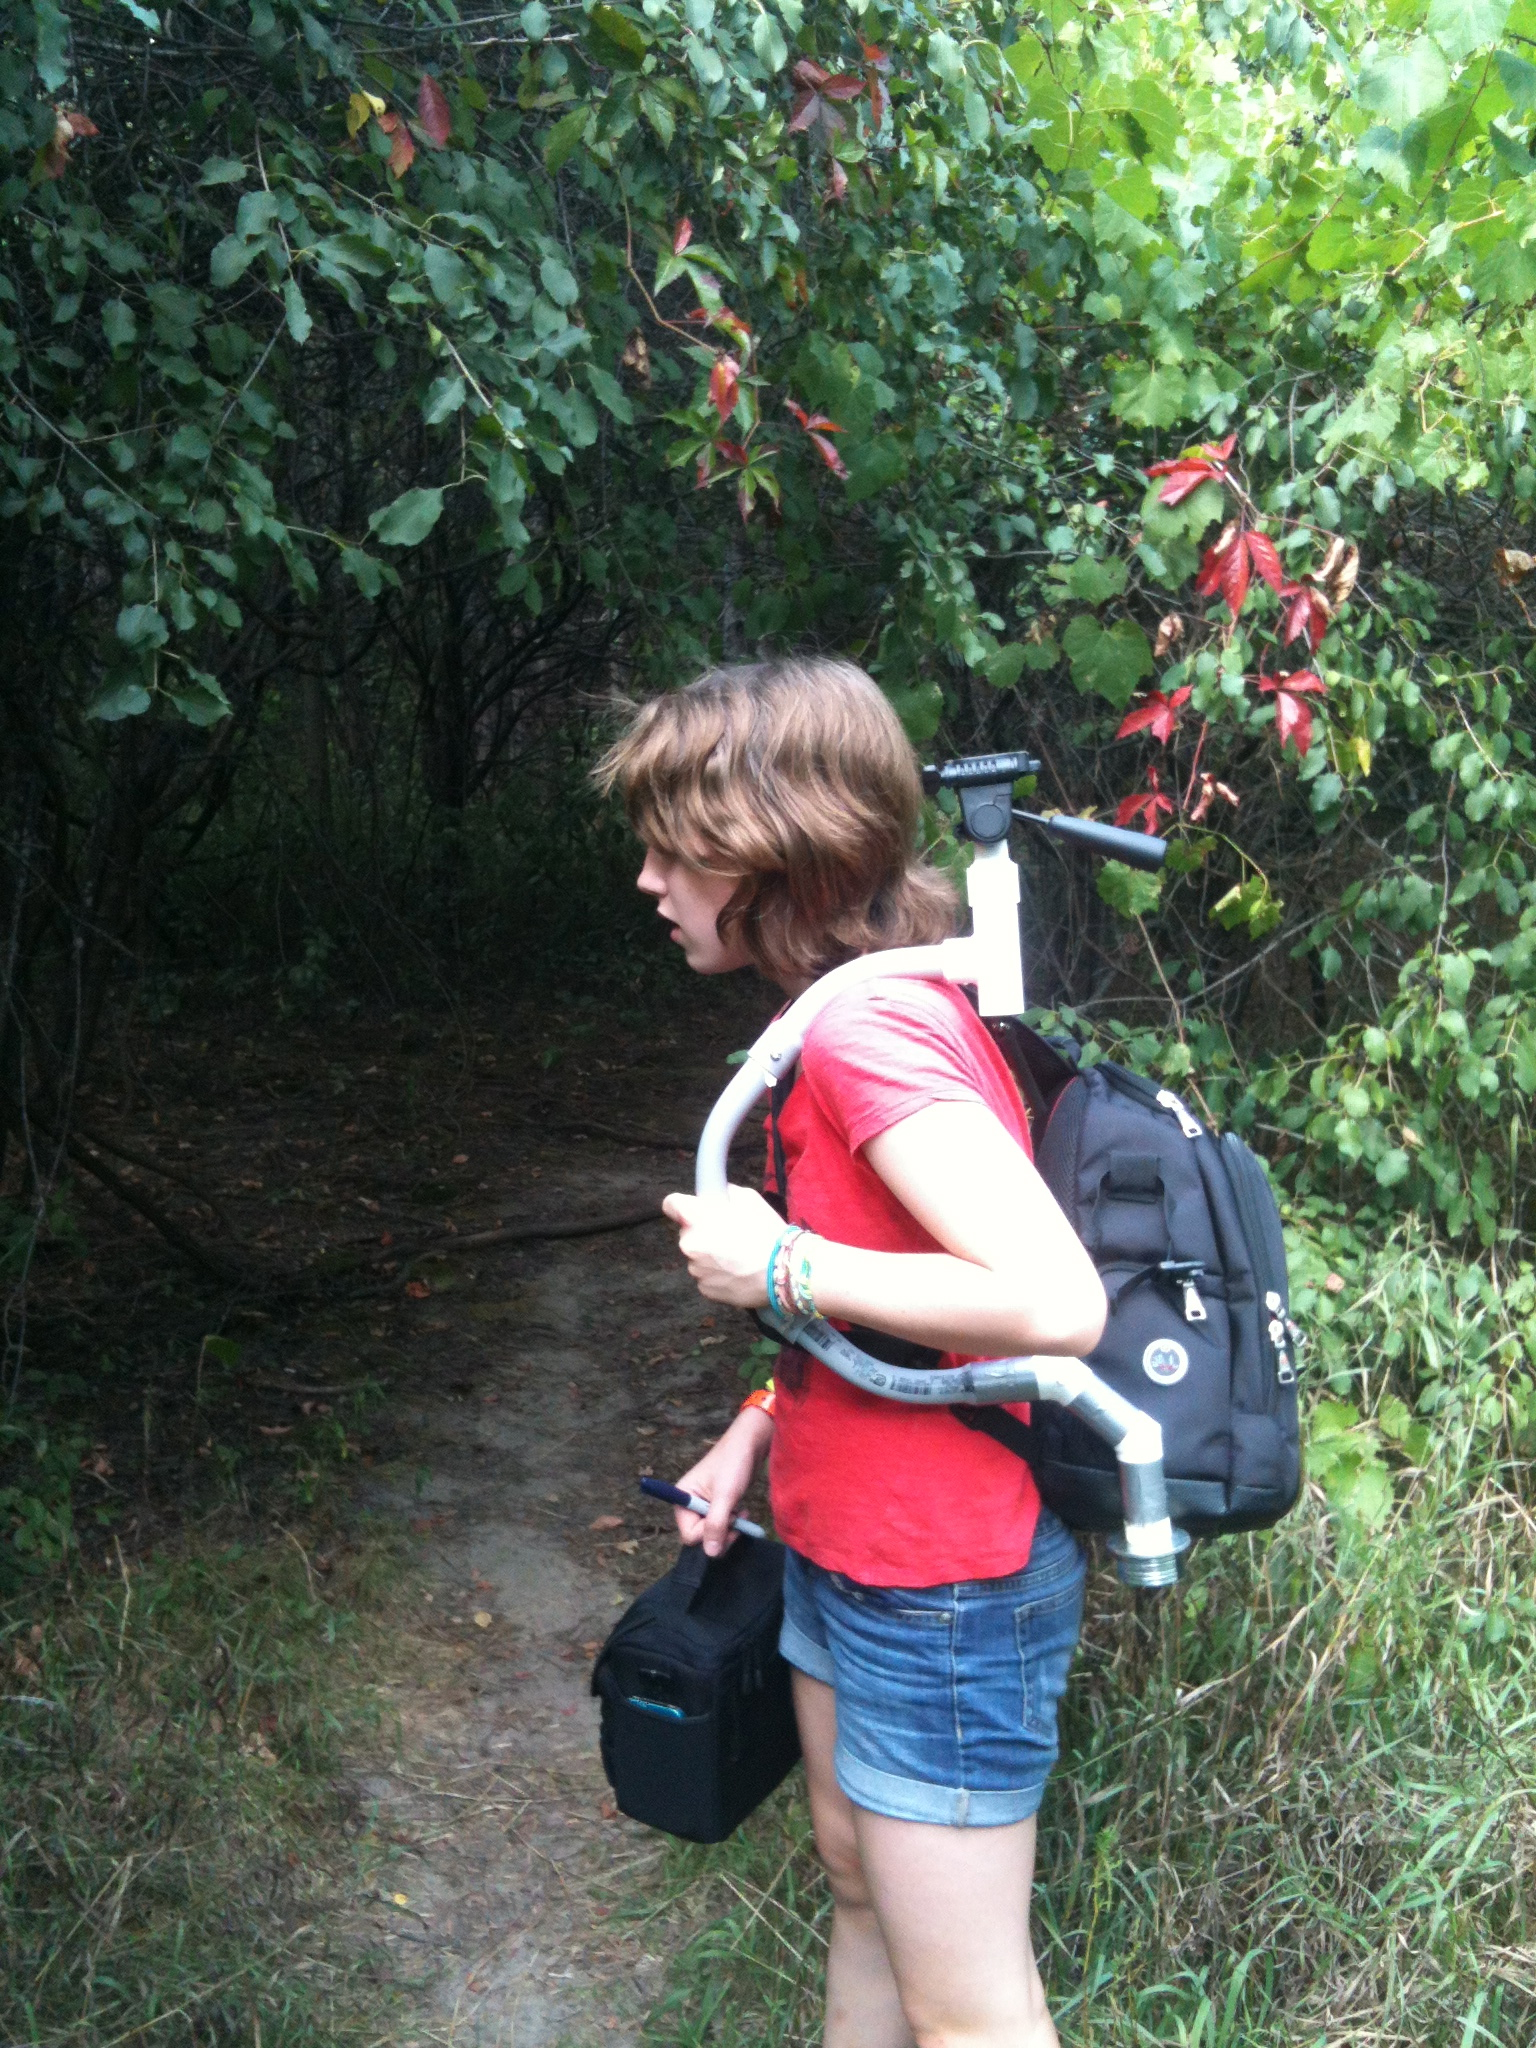 Heading into the woods with camera and DIY stabilizer